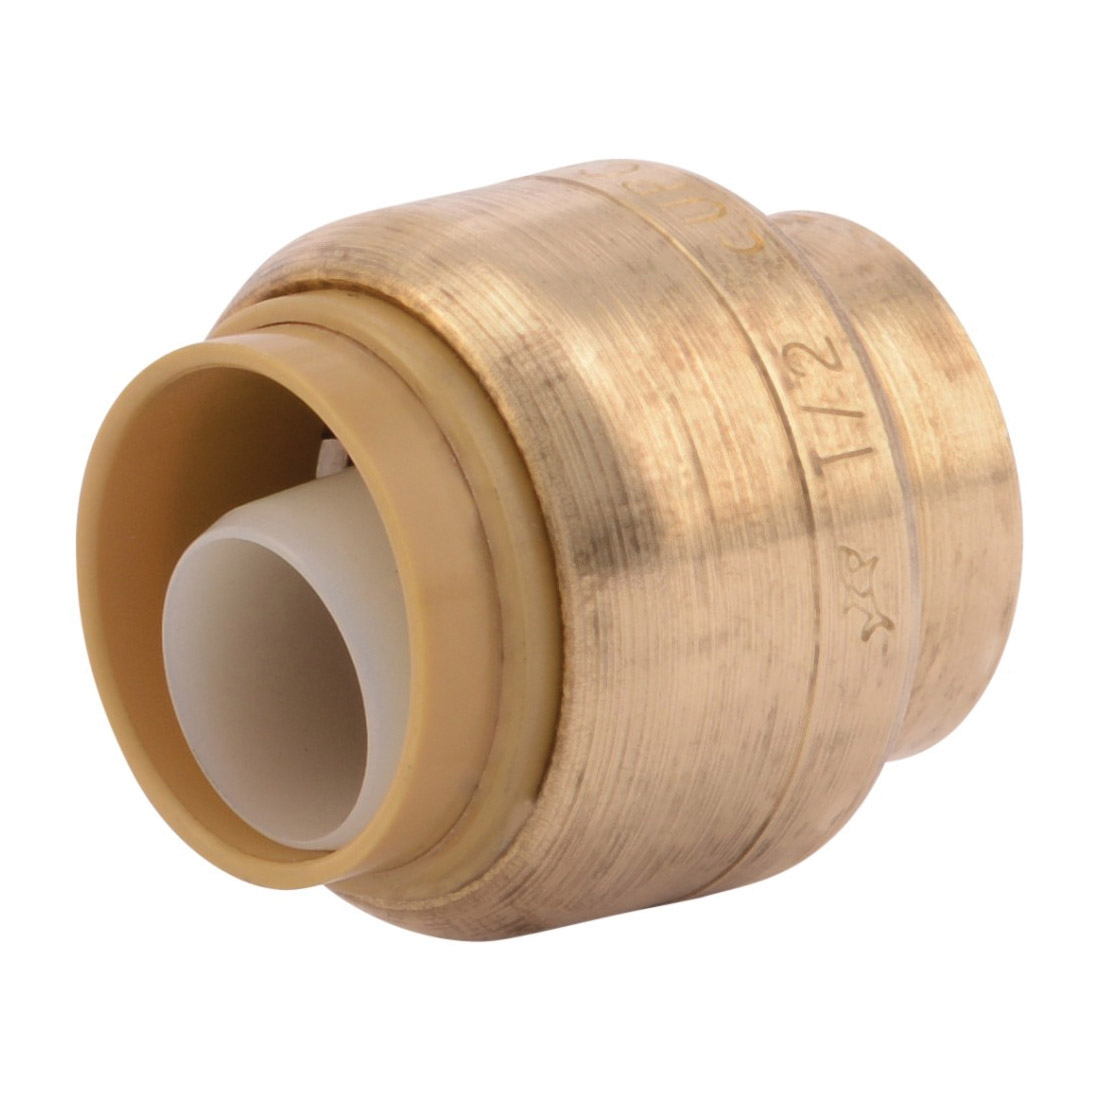 Sharkbite® U514LF Pipe End Cap, 1/2 in Nominal, Push-Fit End Style, Brass, Natural Brass/Chrome Plated, Import